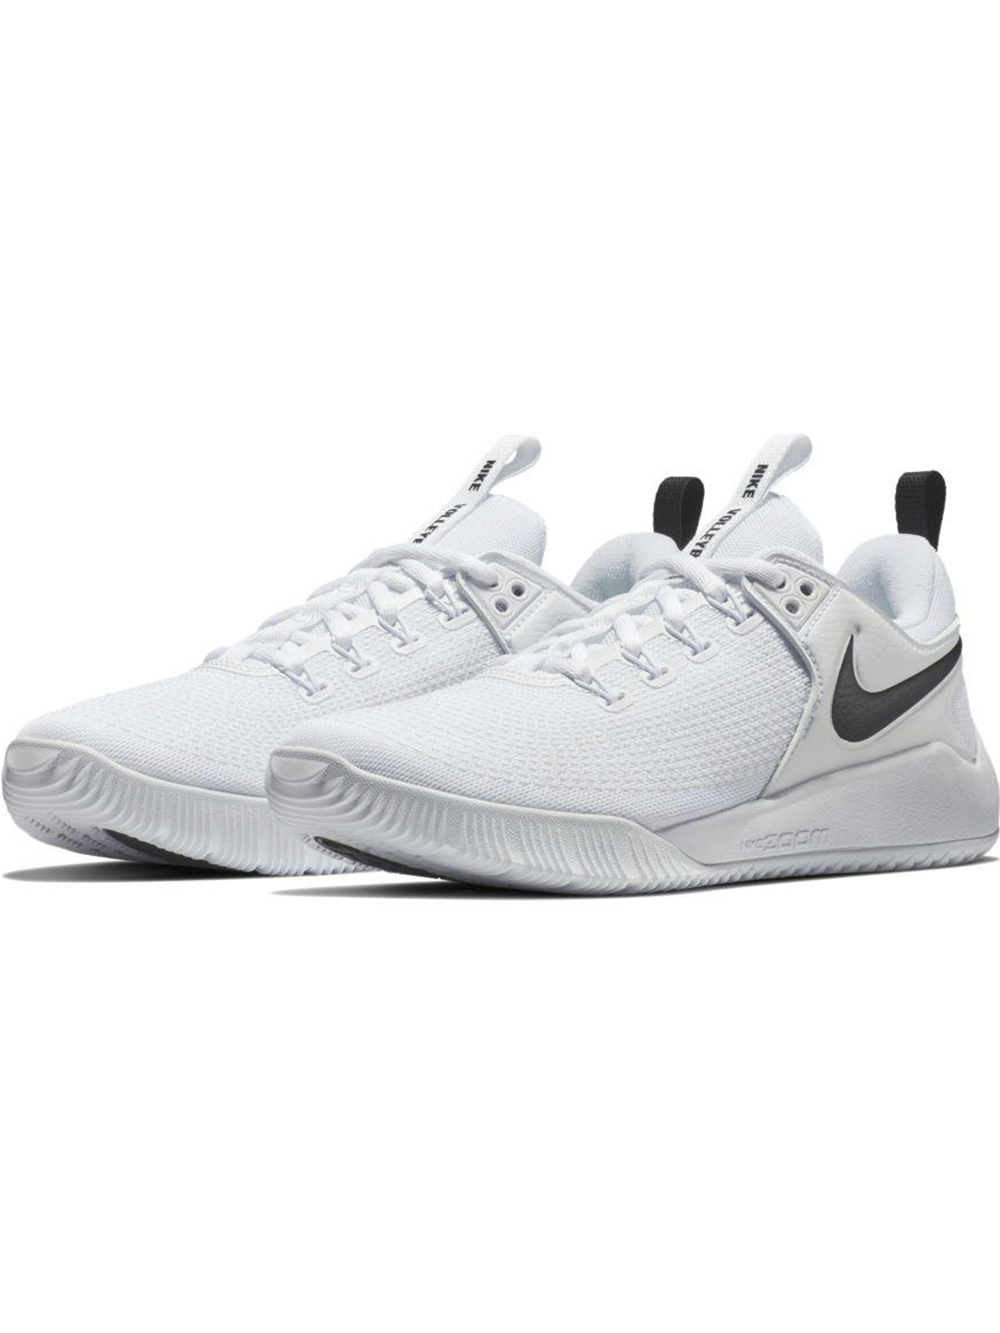 Women S Nike Zoom Hyperace 2 Shoes White Black Midwest